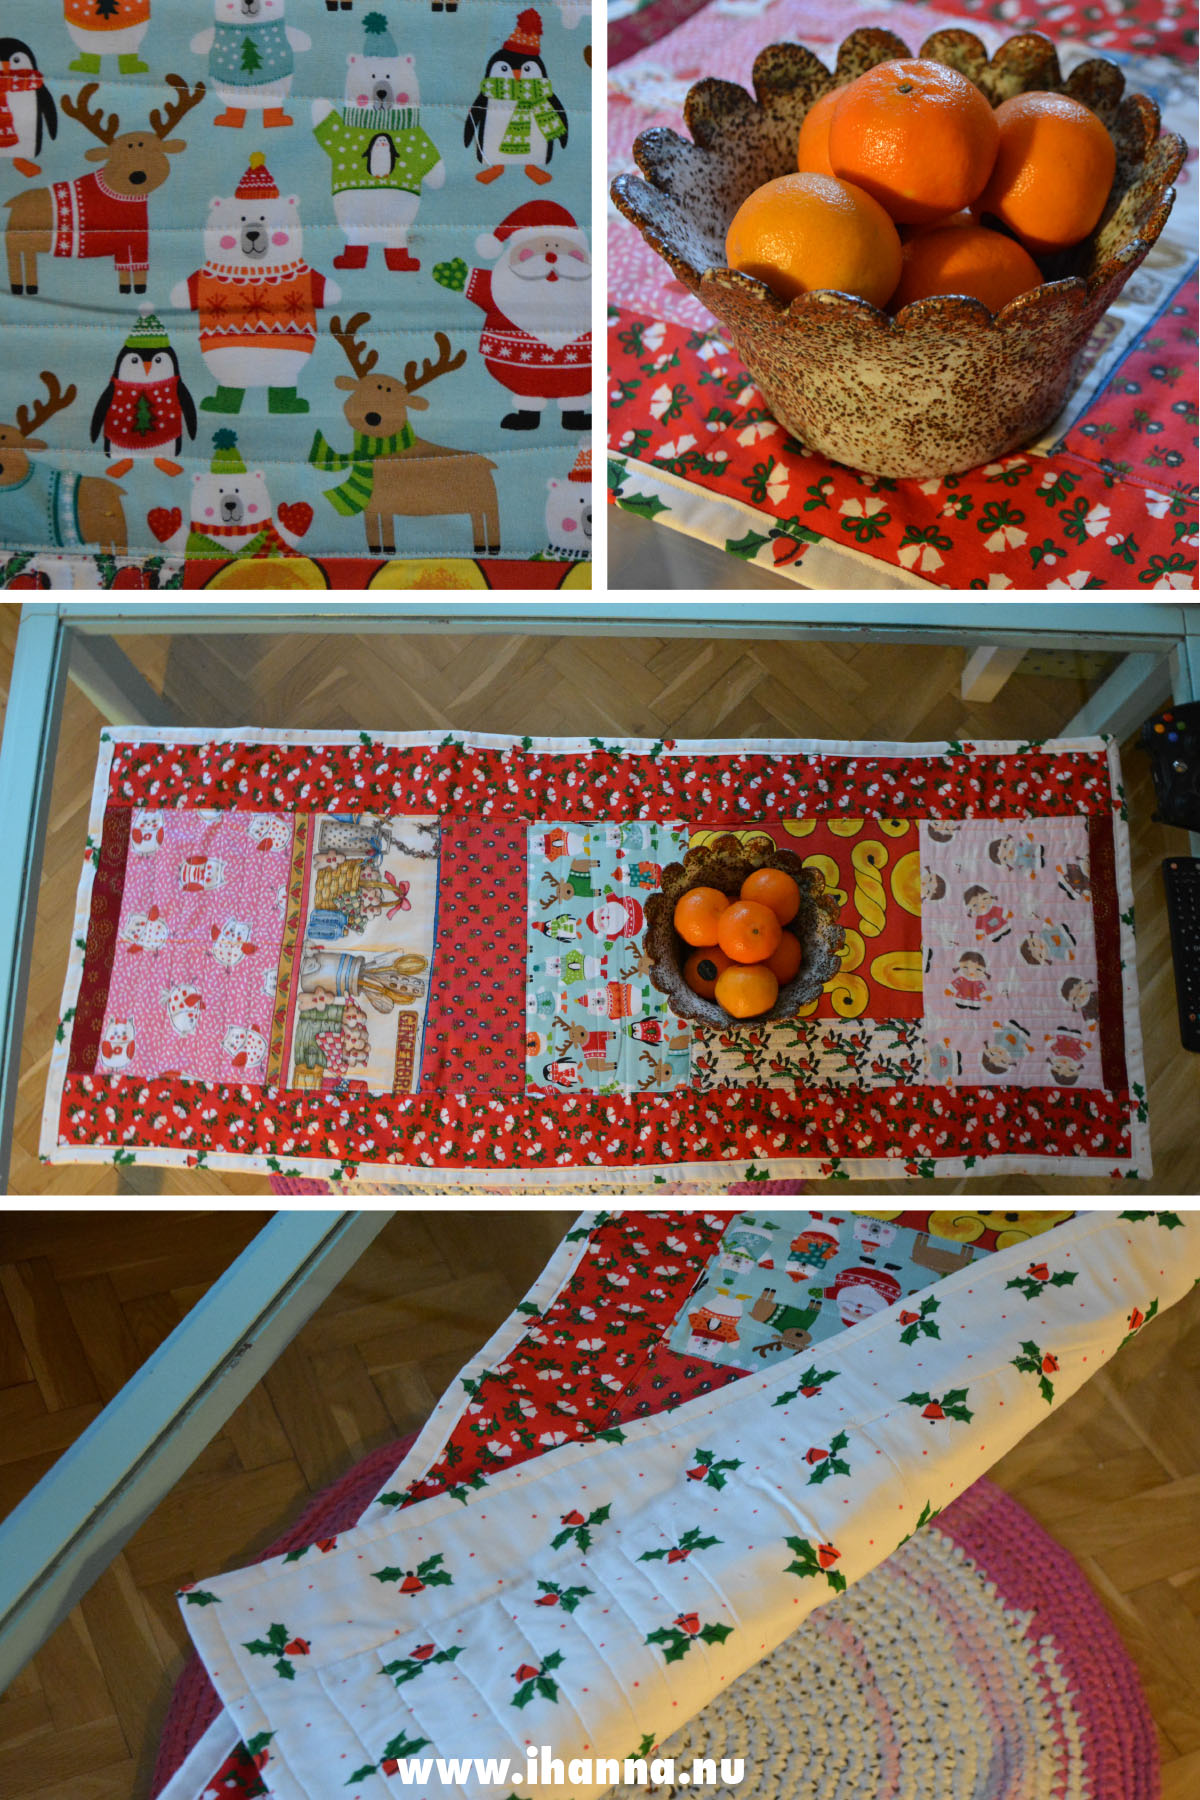 Home-made Christmas by iHanna